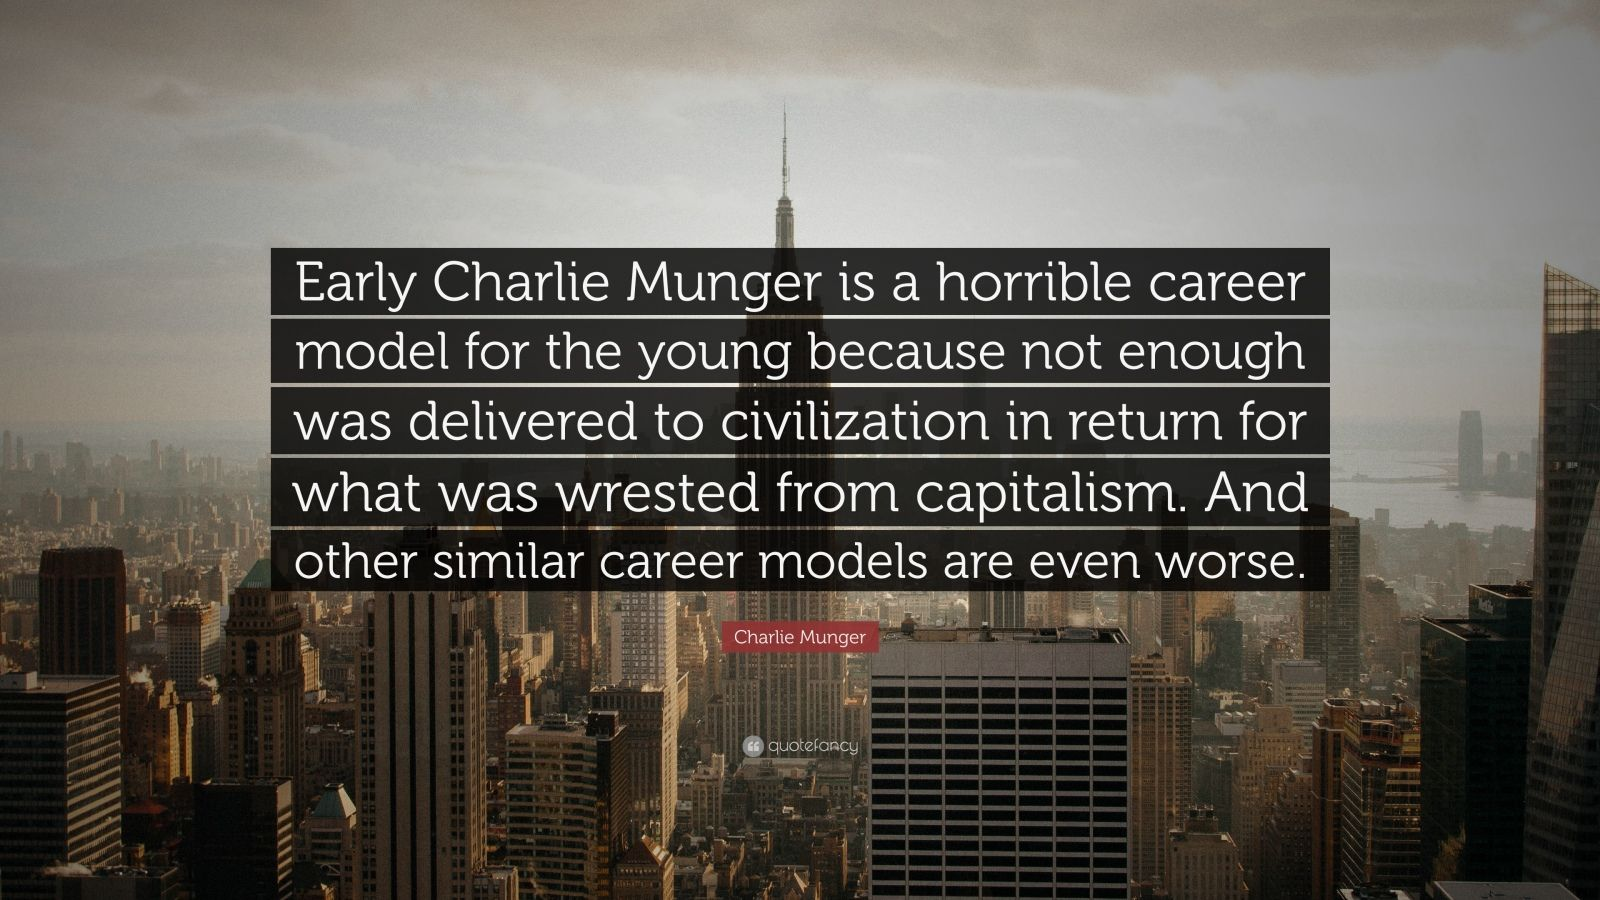 """Charlie Munger Quote: """"Early Charlie Munger is a horrible career model for the young because not enough was delivered to civilization in return for what was wrested from capitalism. And other similar career models are even worse."""""""